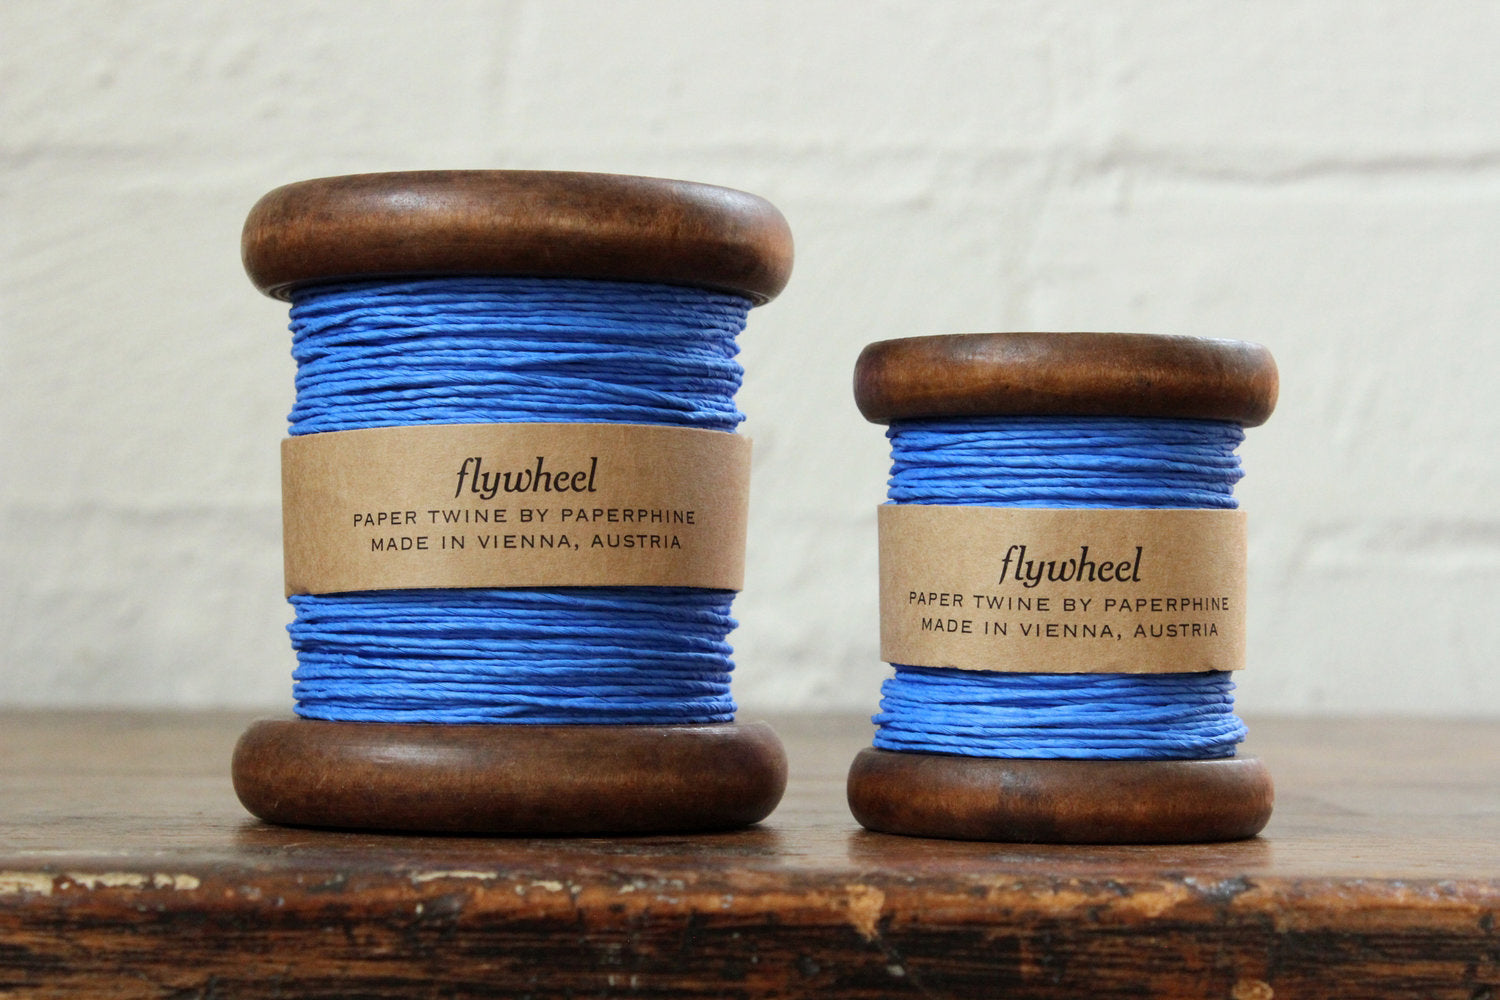 Paperphine Paper Twine on Wooden Spool - Blue